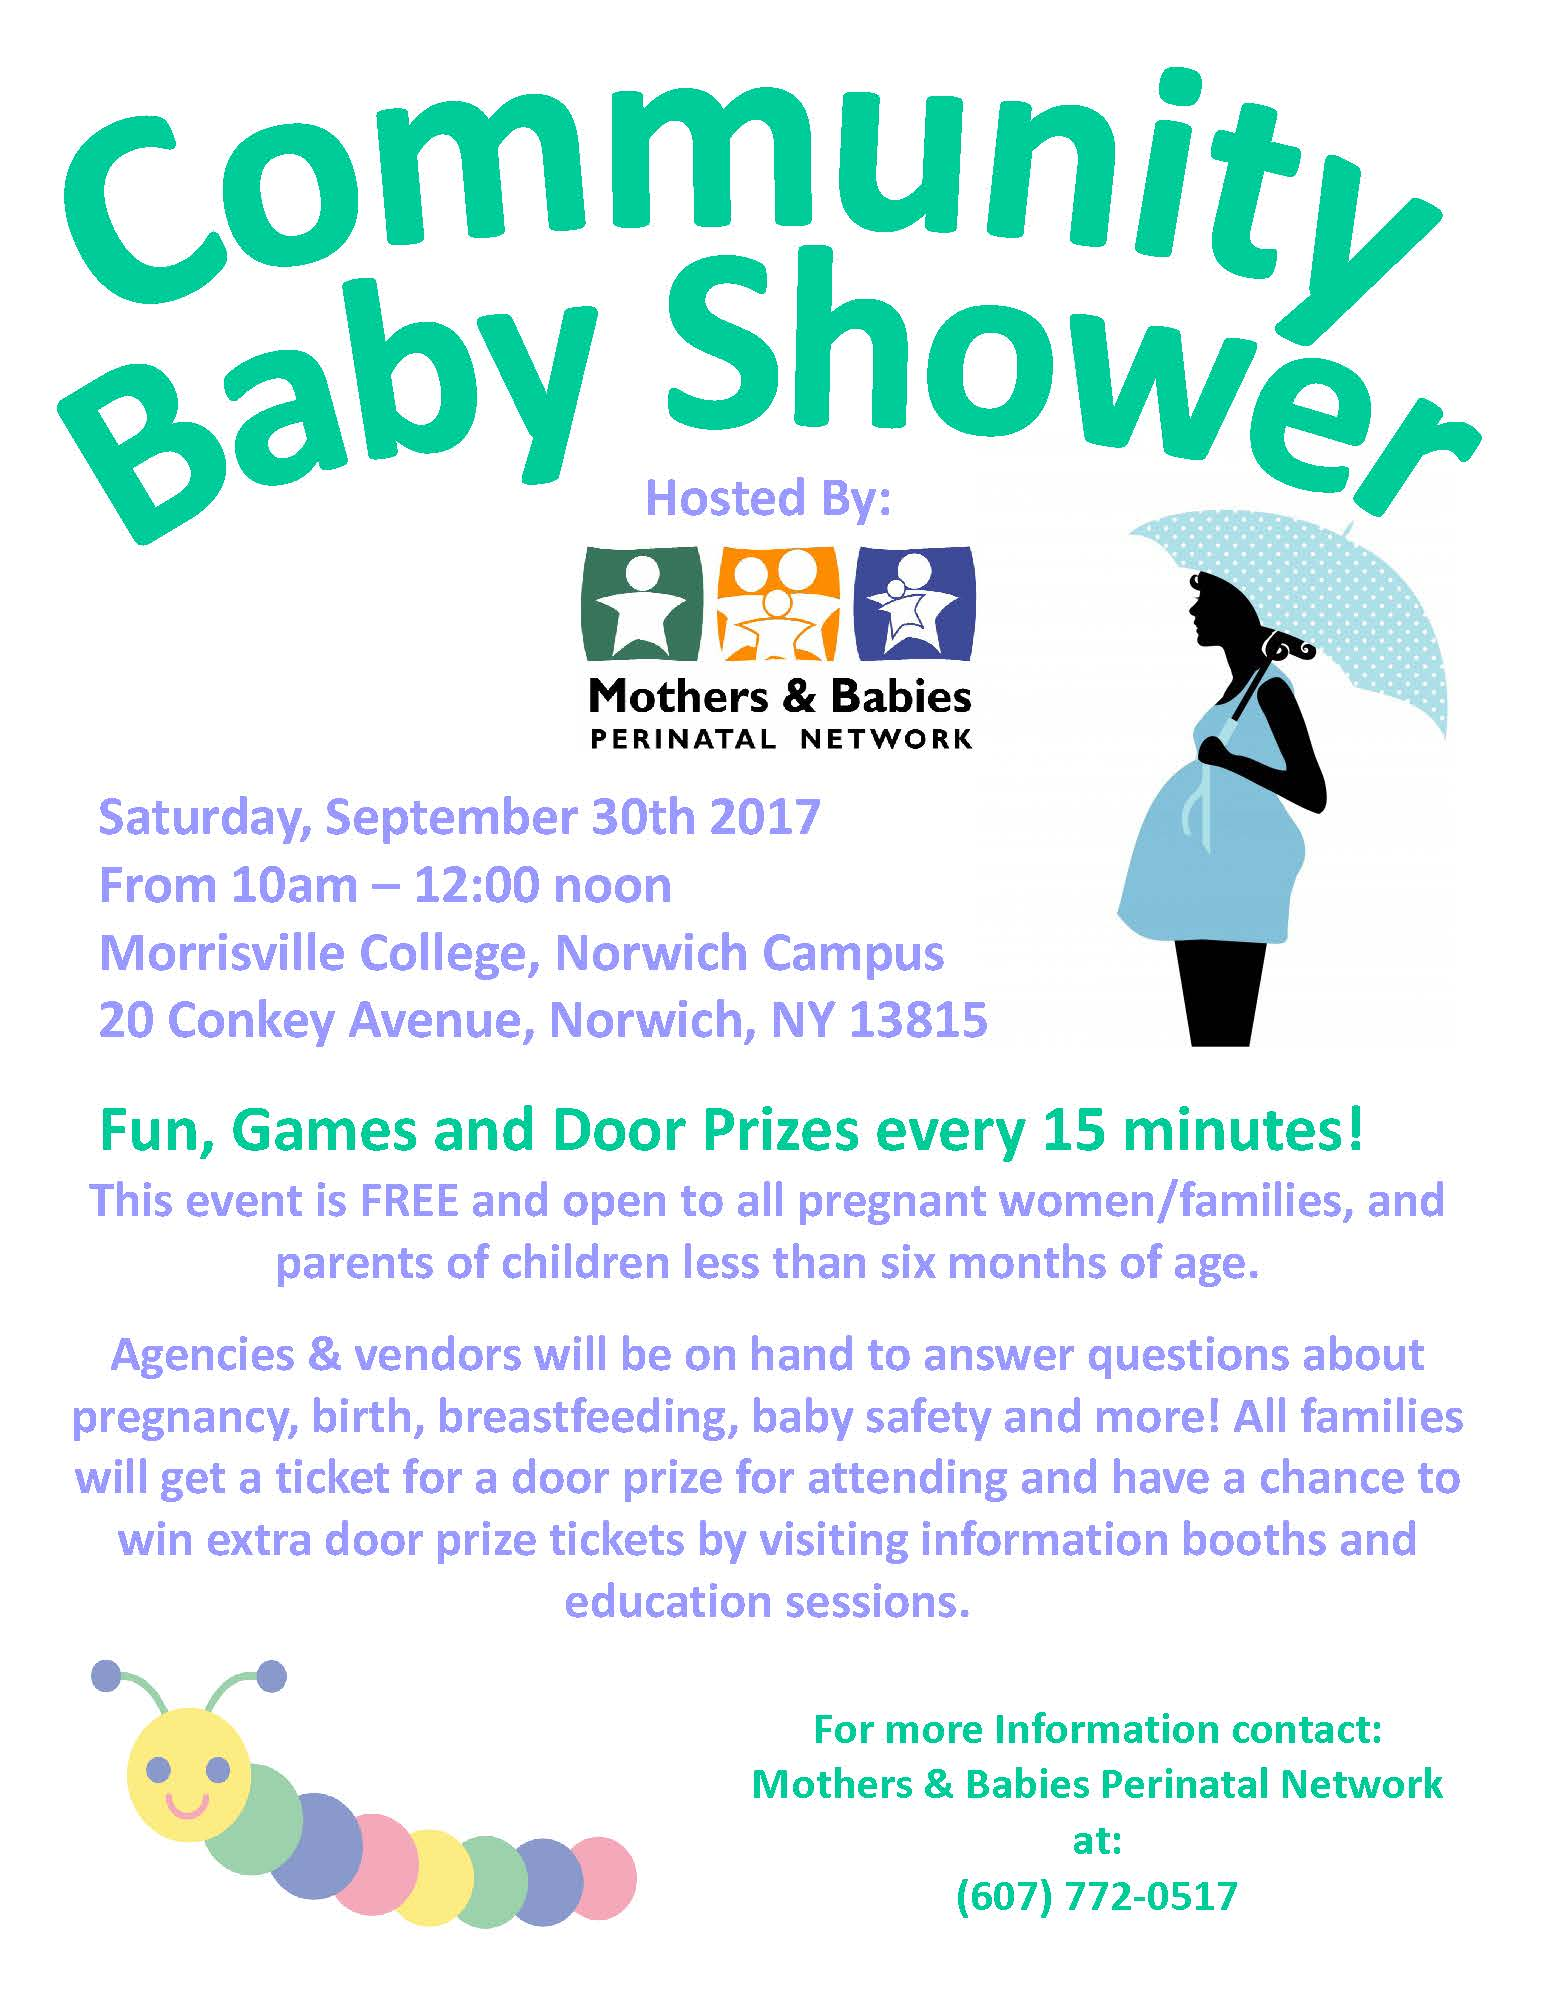 2017 Community Baby Shower